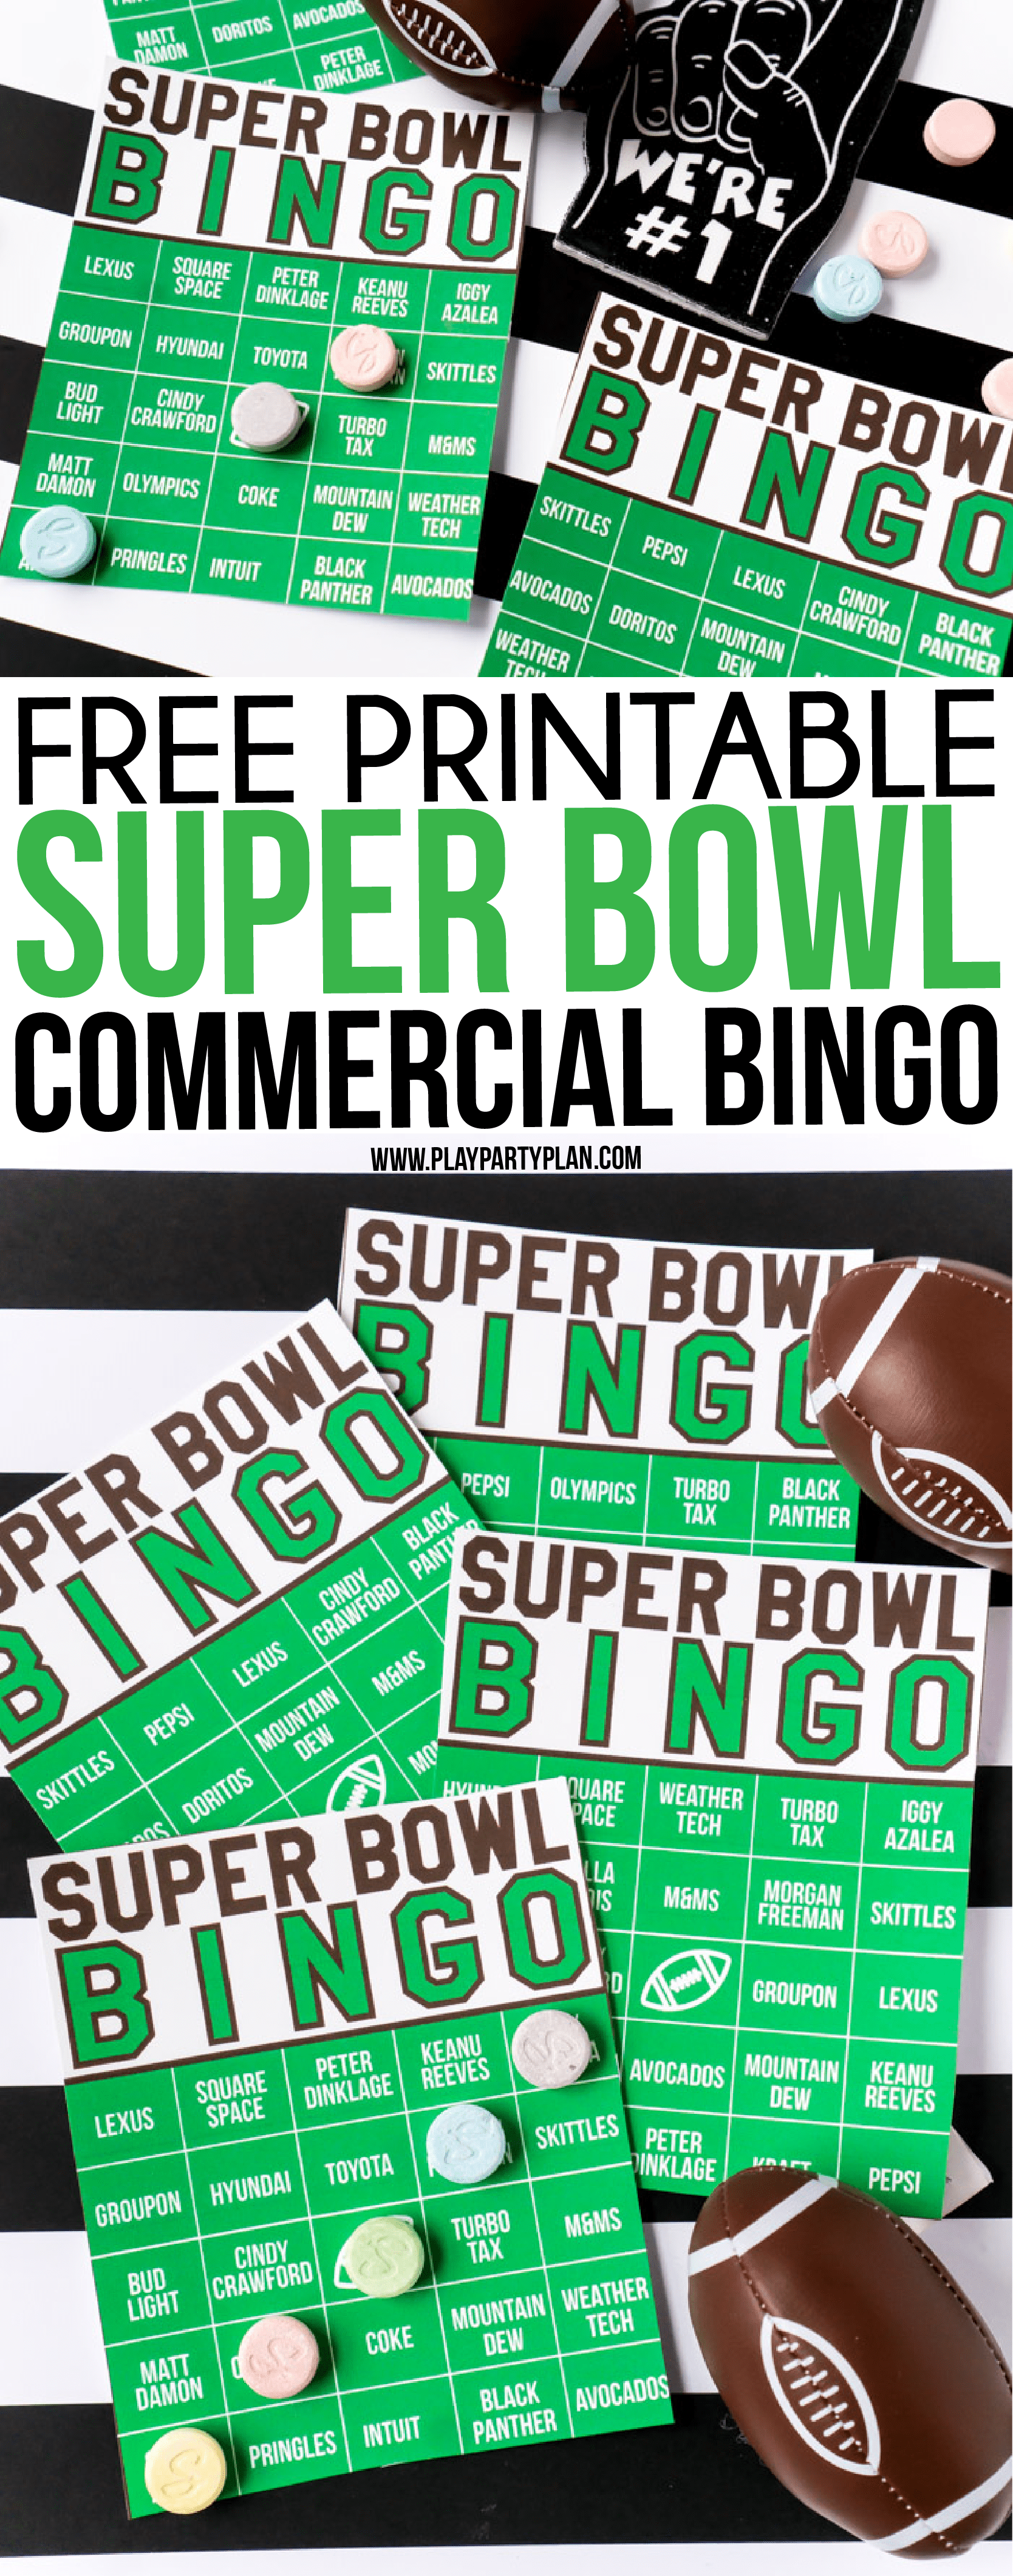 The Best Super Bowl Bingo Game   Super Bowl Commercial Bingo These Super Bowl commercial bingo cards are one of the best Super Bowl  party games ever